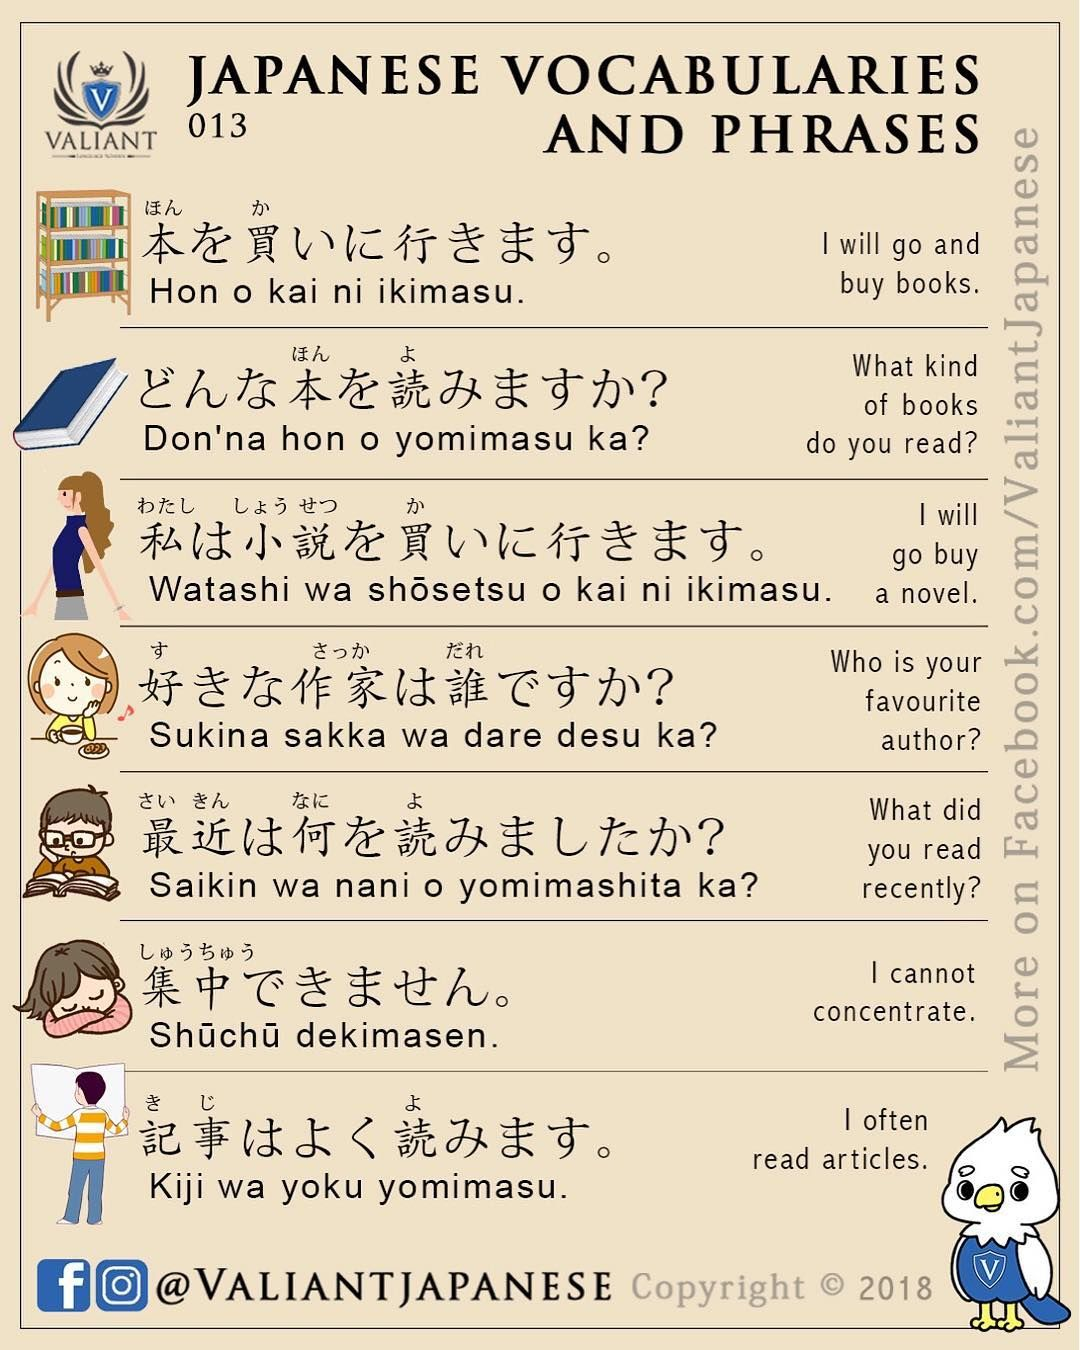 Japanese Vocabulary And Phrases 013 Books And Reading